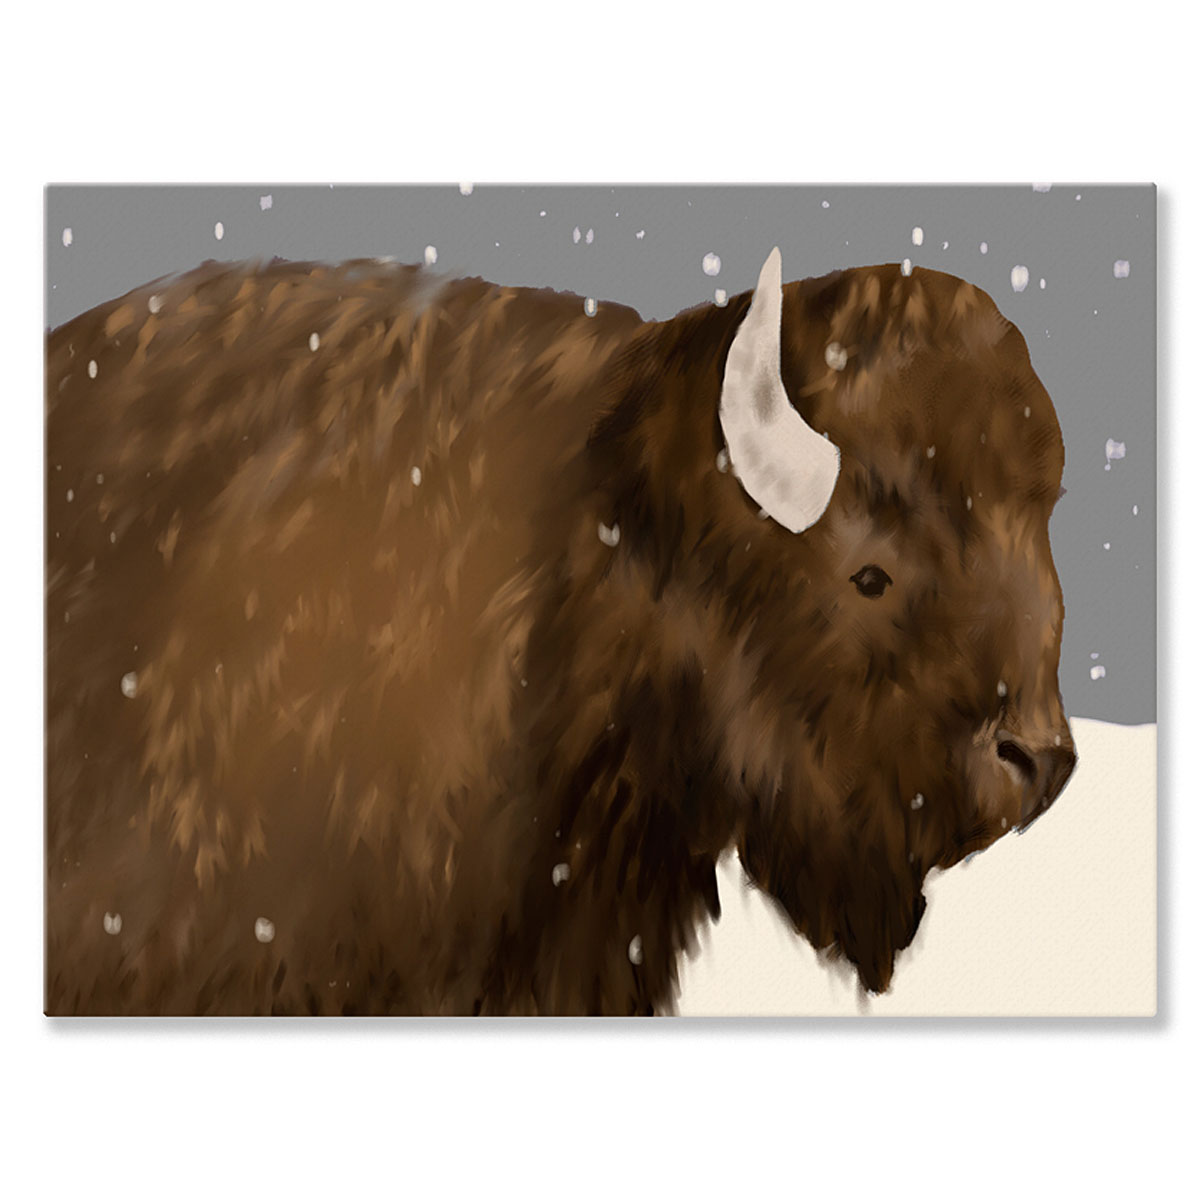 Oopsy Daisy - Canvas Wall Art Bridget Bison 24x18 By Meghann O'hara